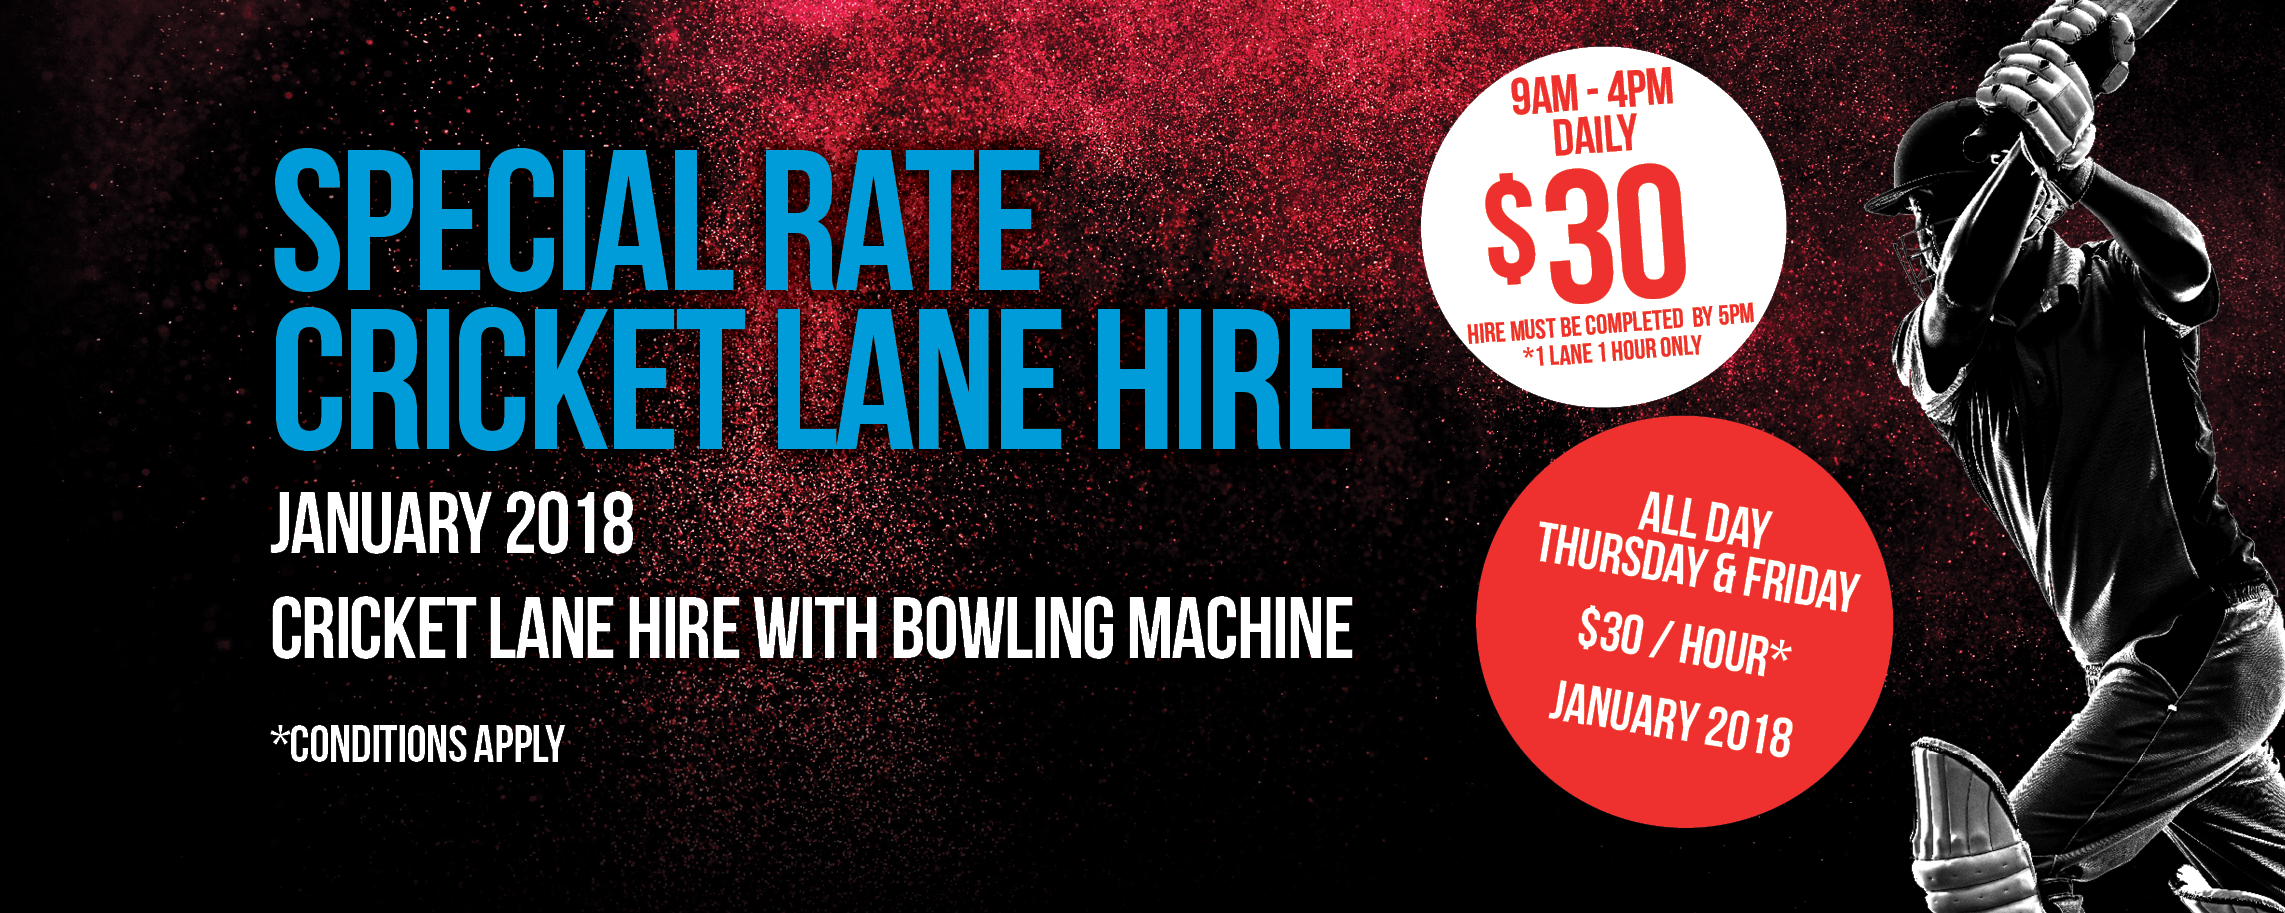 Special Cricket Lane Rate January 2018